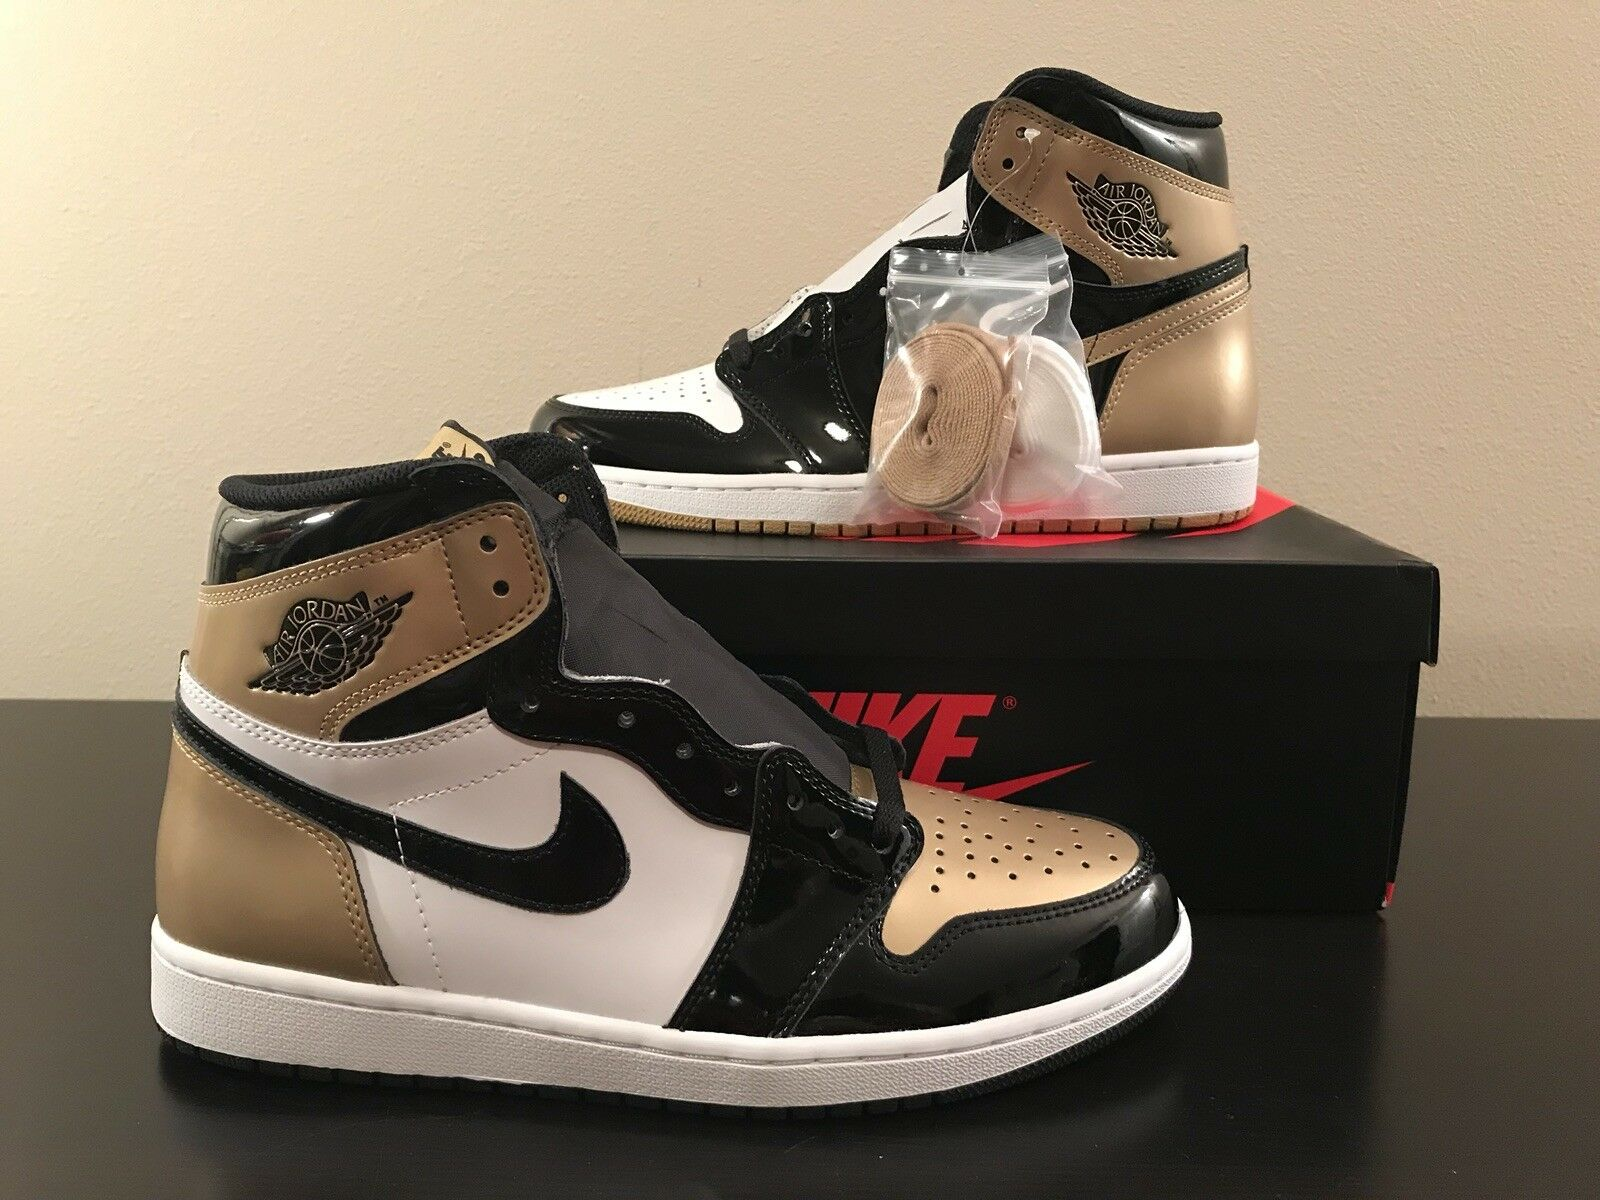 Nike Air Jordan 1 Retro High OG NRG SZ 10 gold Top 3 Complex Con 861428-001